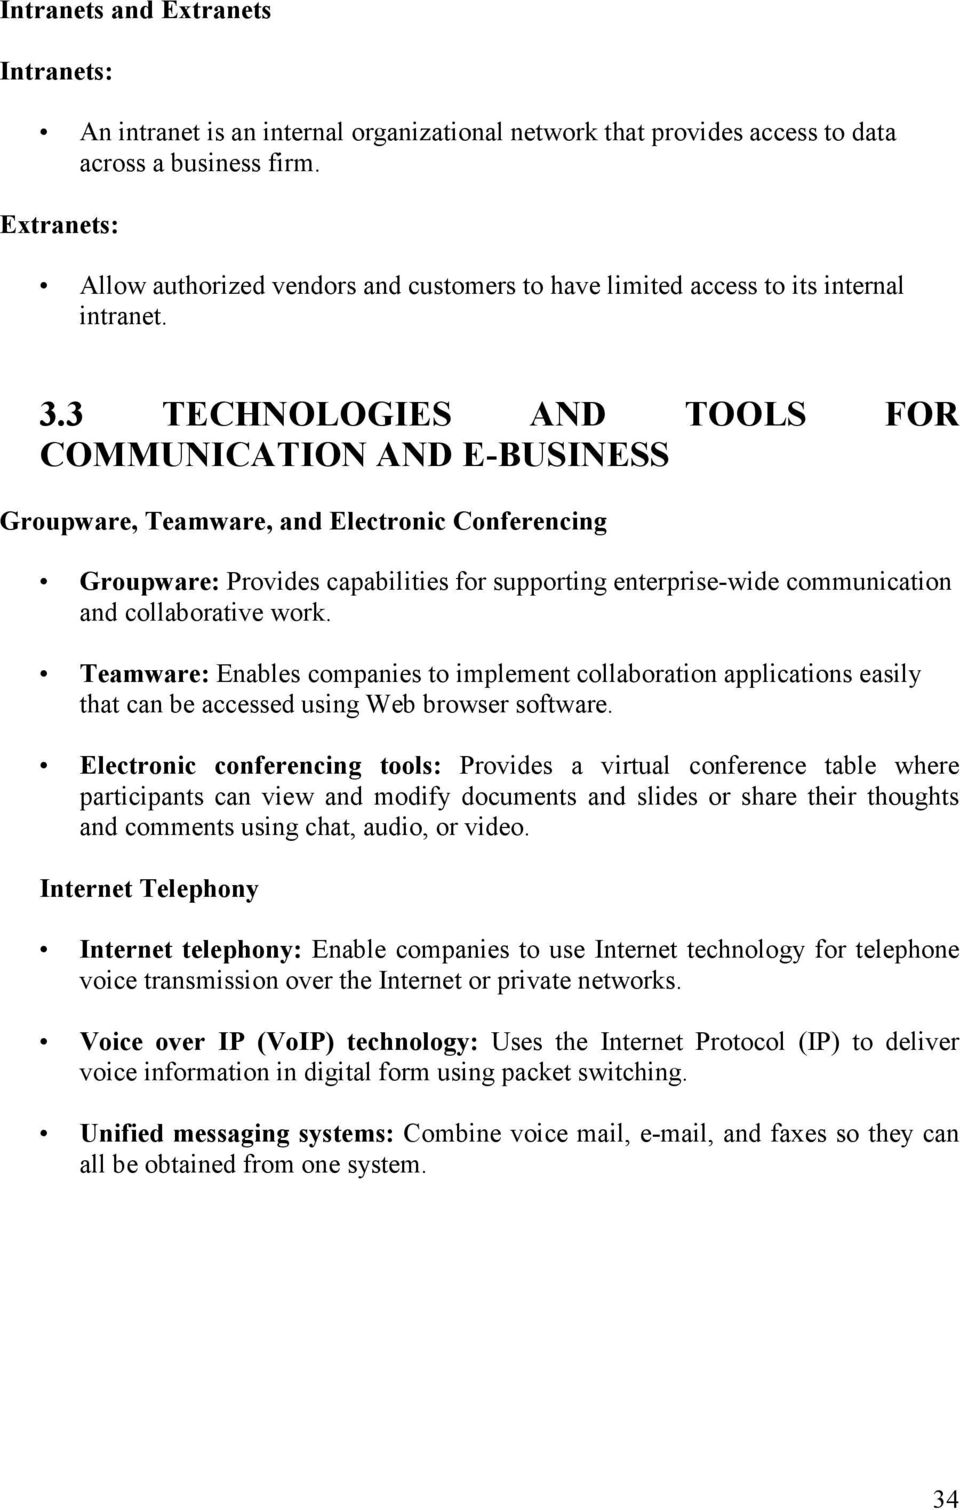 3 TECHNOLOGIES AND TOOLS FOR COMMUNICATION AND E-BUSINESS Groupware, Teamware, and Electronic Conferencing Groupware: Provides capabilities for supporting enterprise-wide communication and